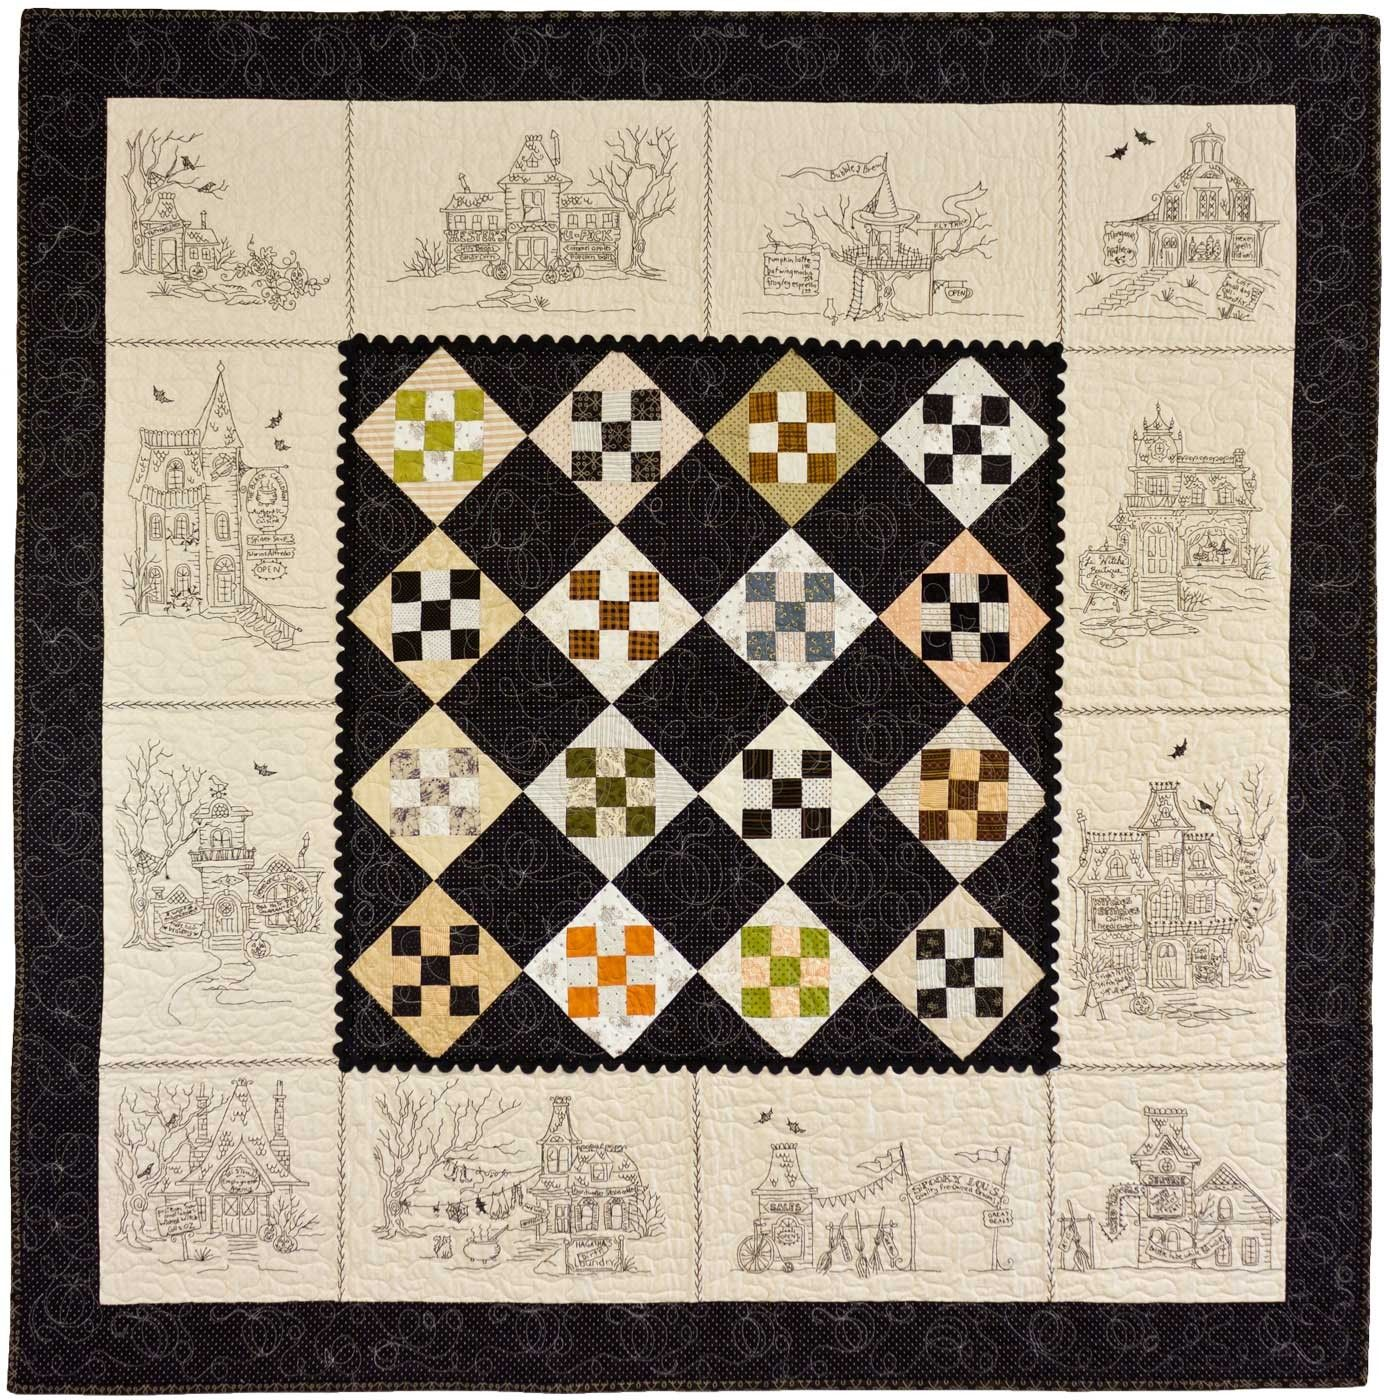 Hocuspocusville  by Meg Hawkey at Crabapple Hill Designs. 12 ... : embroidered quilts patterns - Adamdwight.com